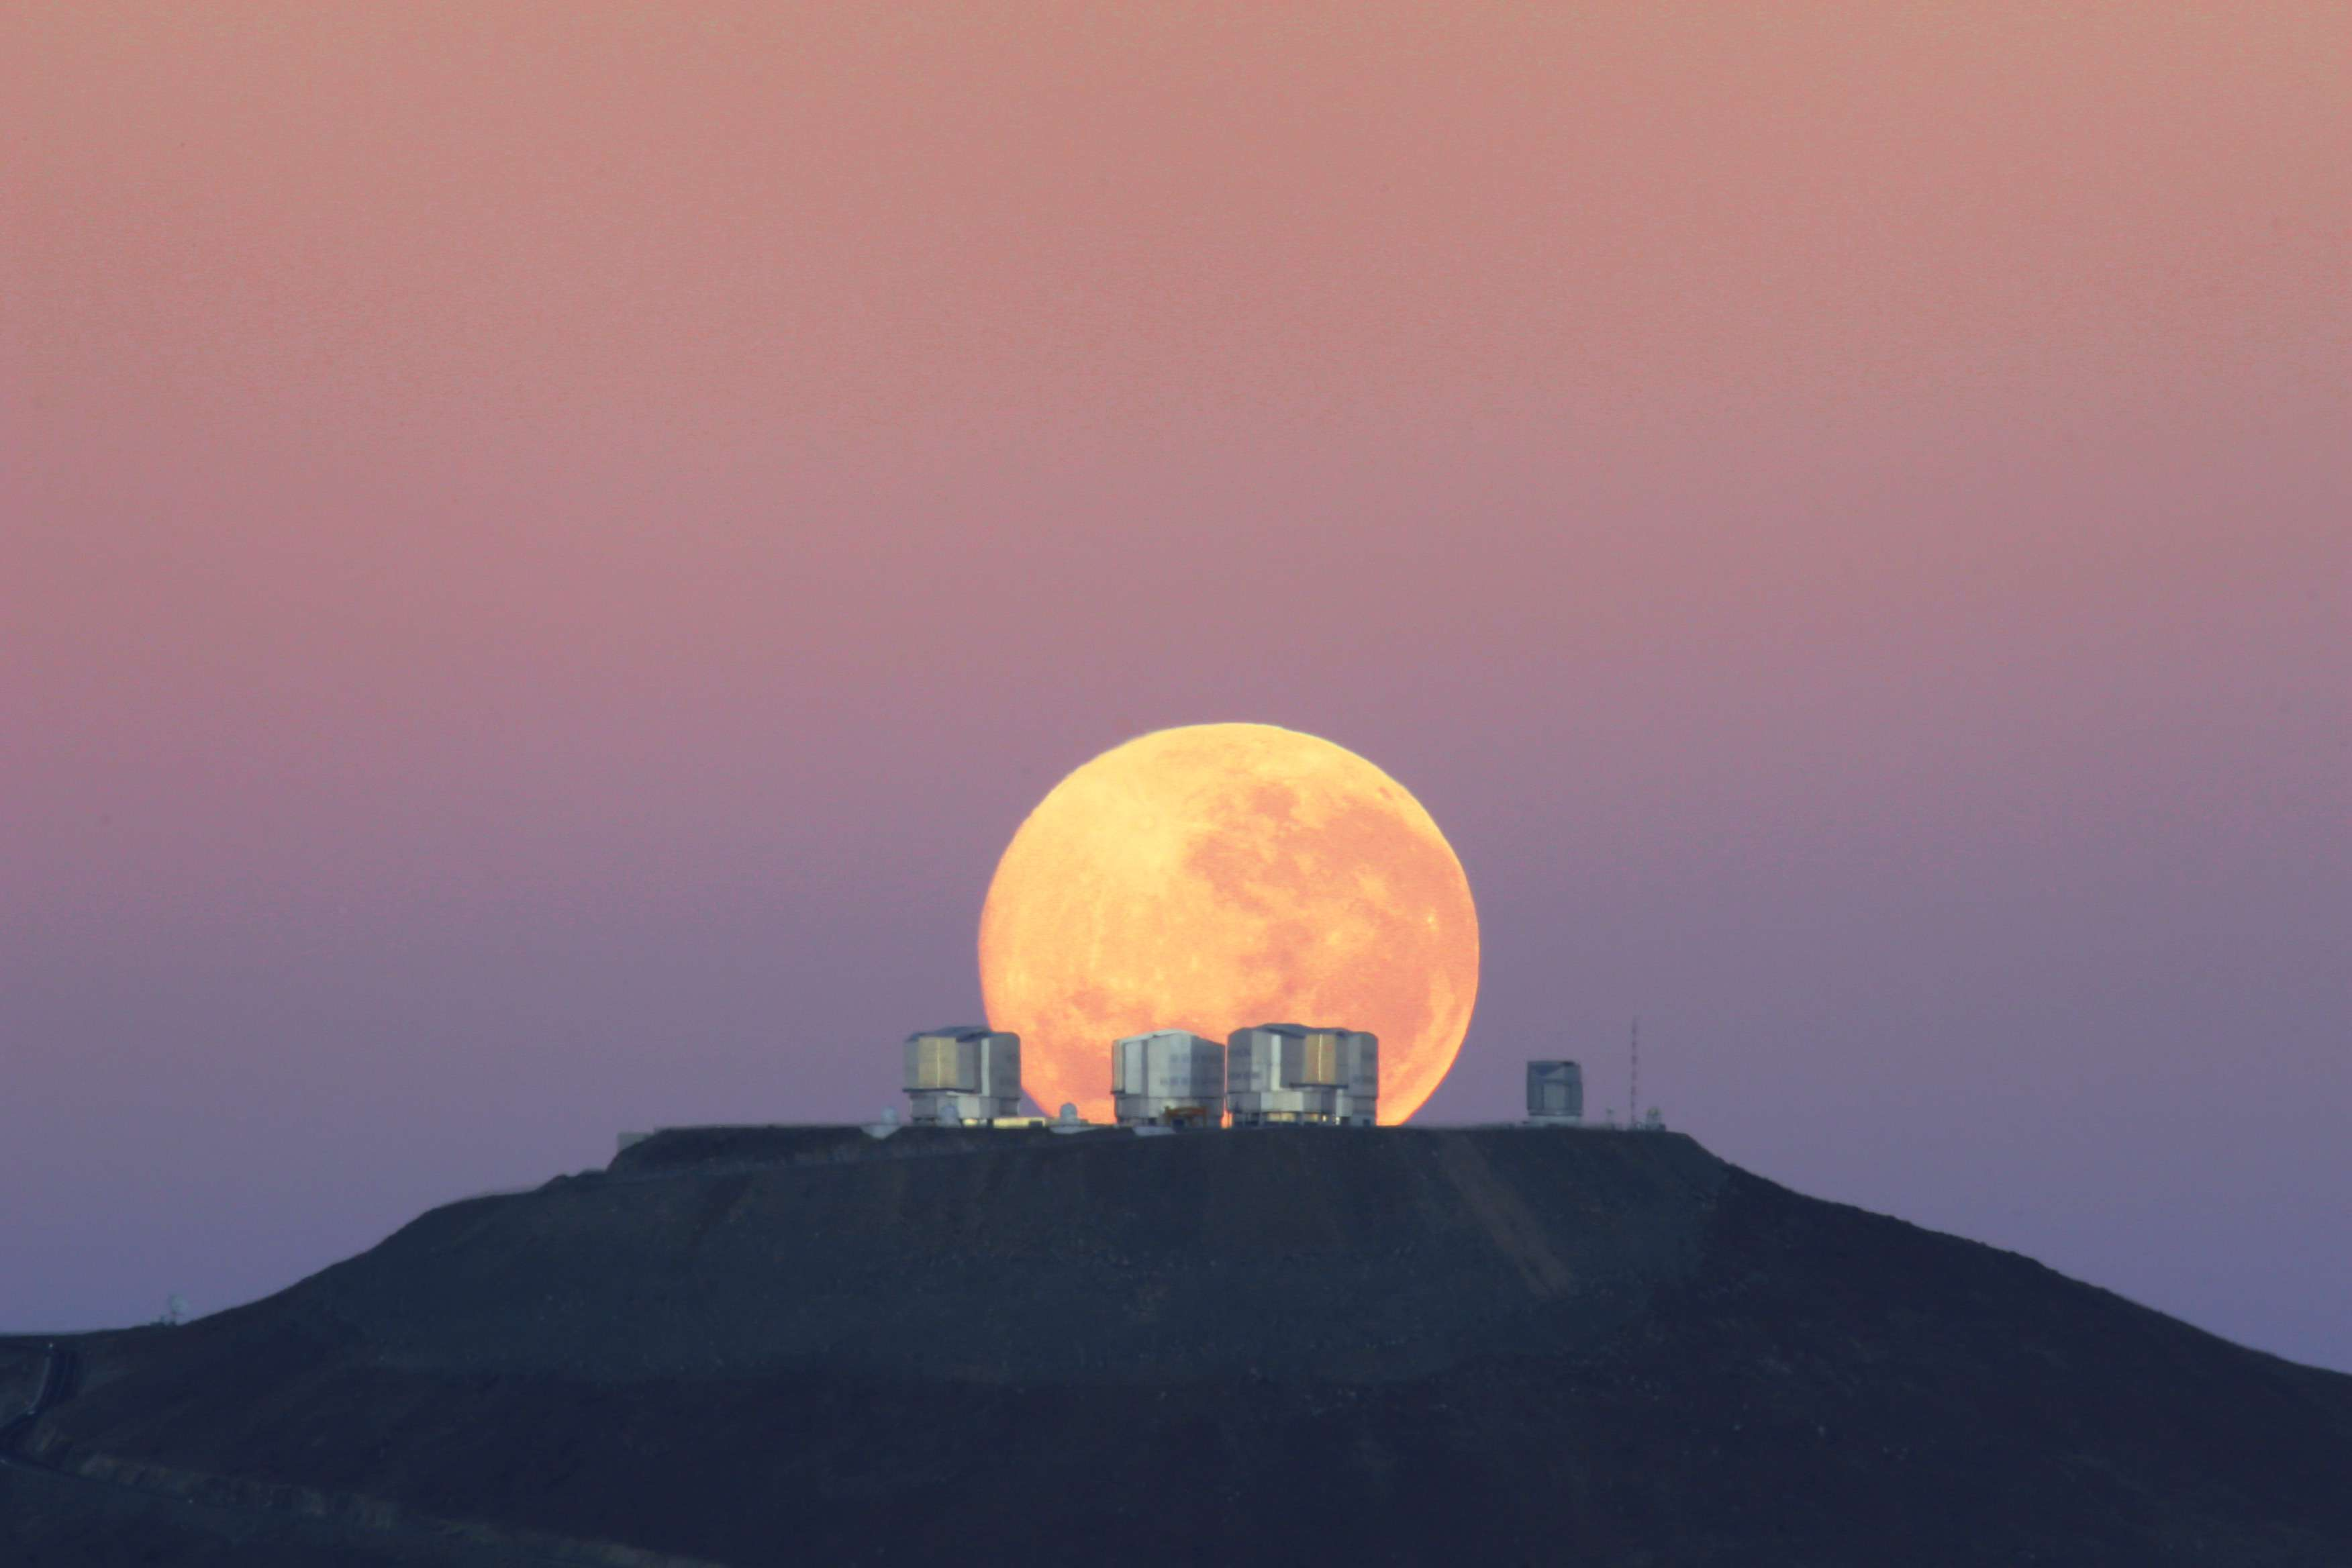 The VLT Observatory in Paranal, Chile.